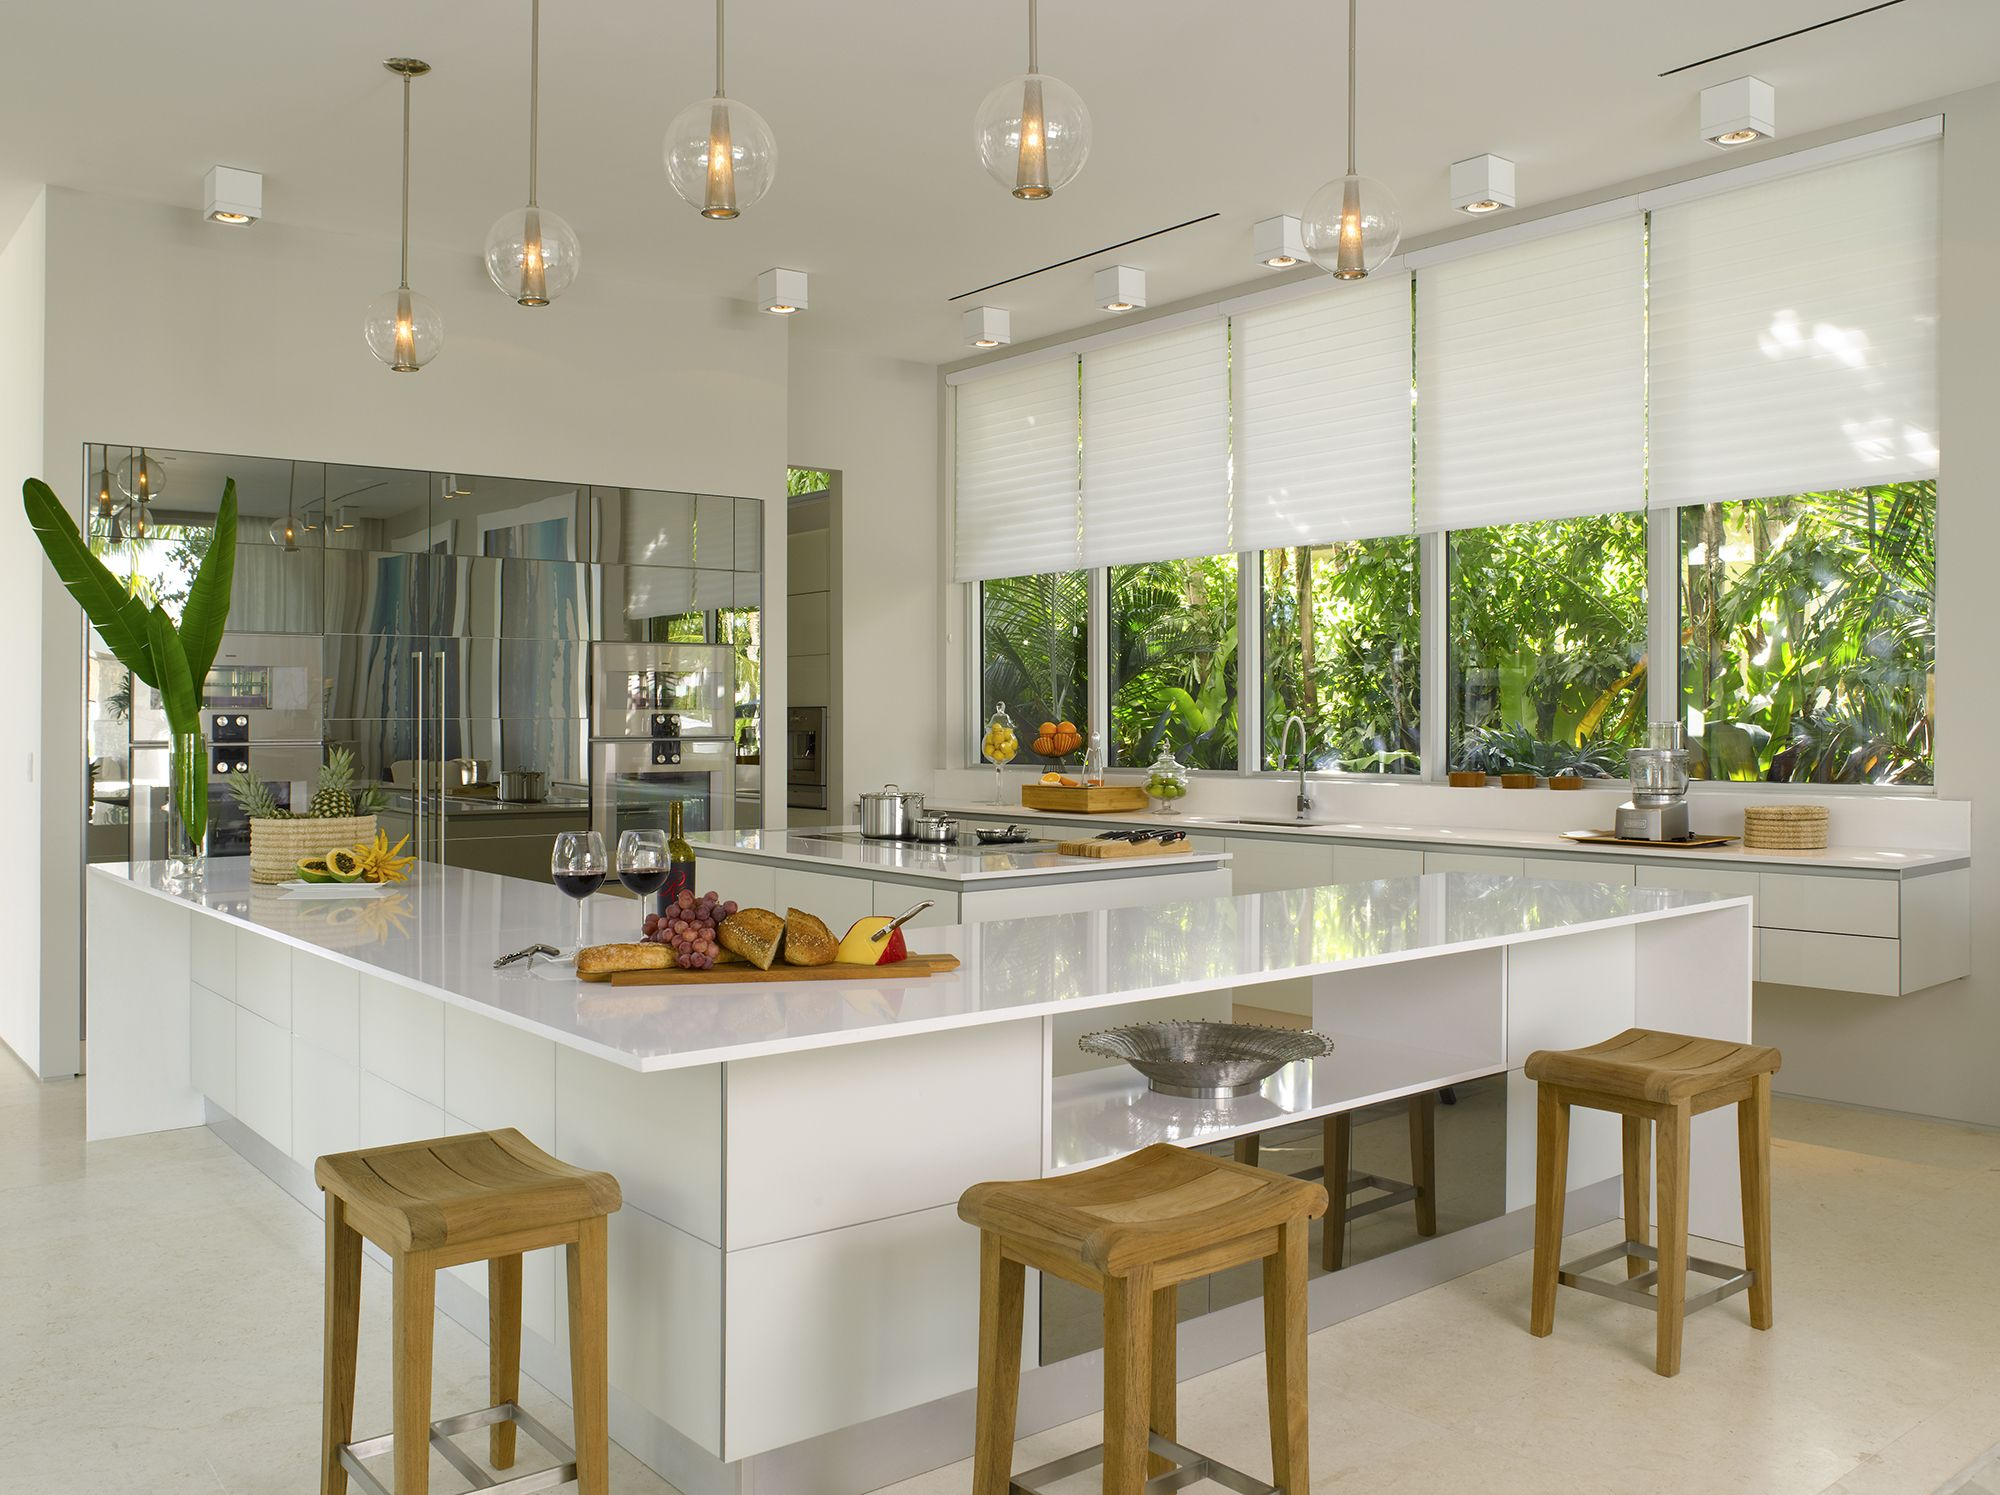 A Brilliant White Kitchen Design With Silhouette Window Shadings